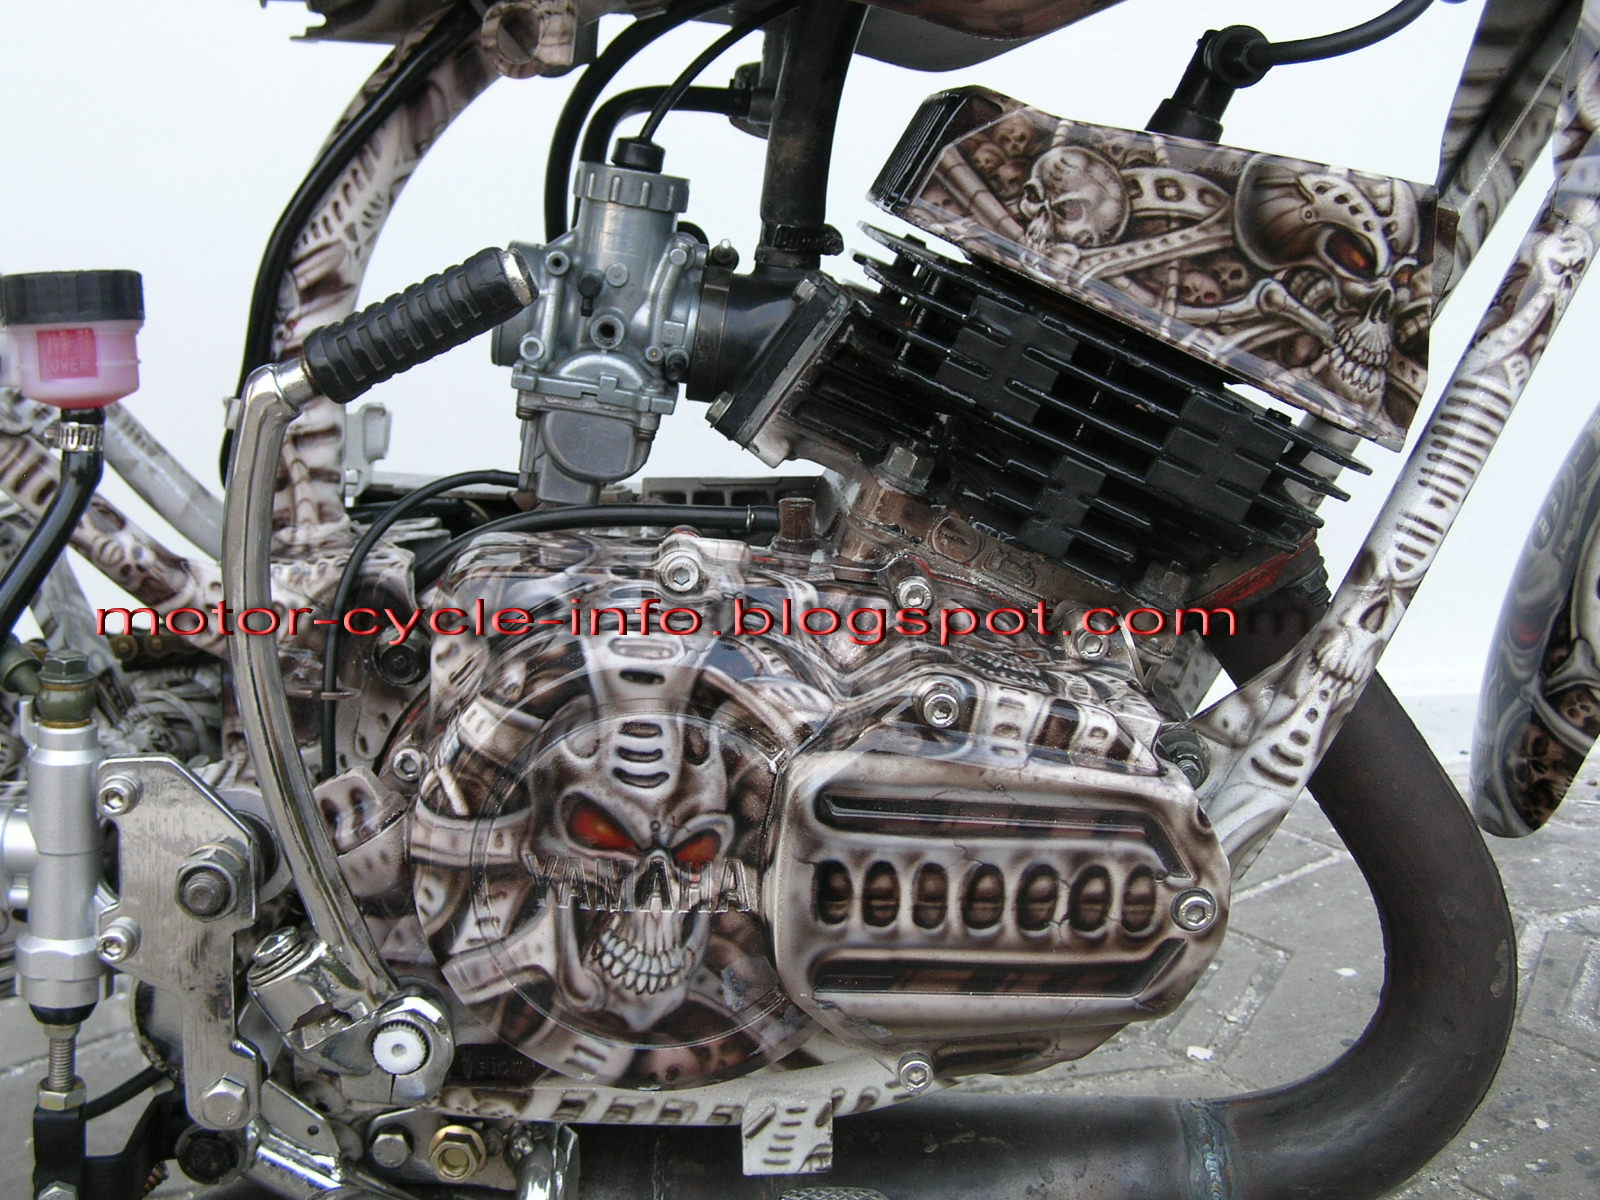 airbrush rx king with skull theme make yamaha RX king more attractive